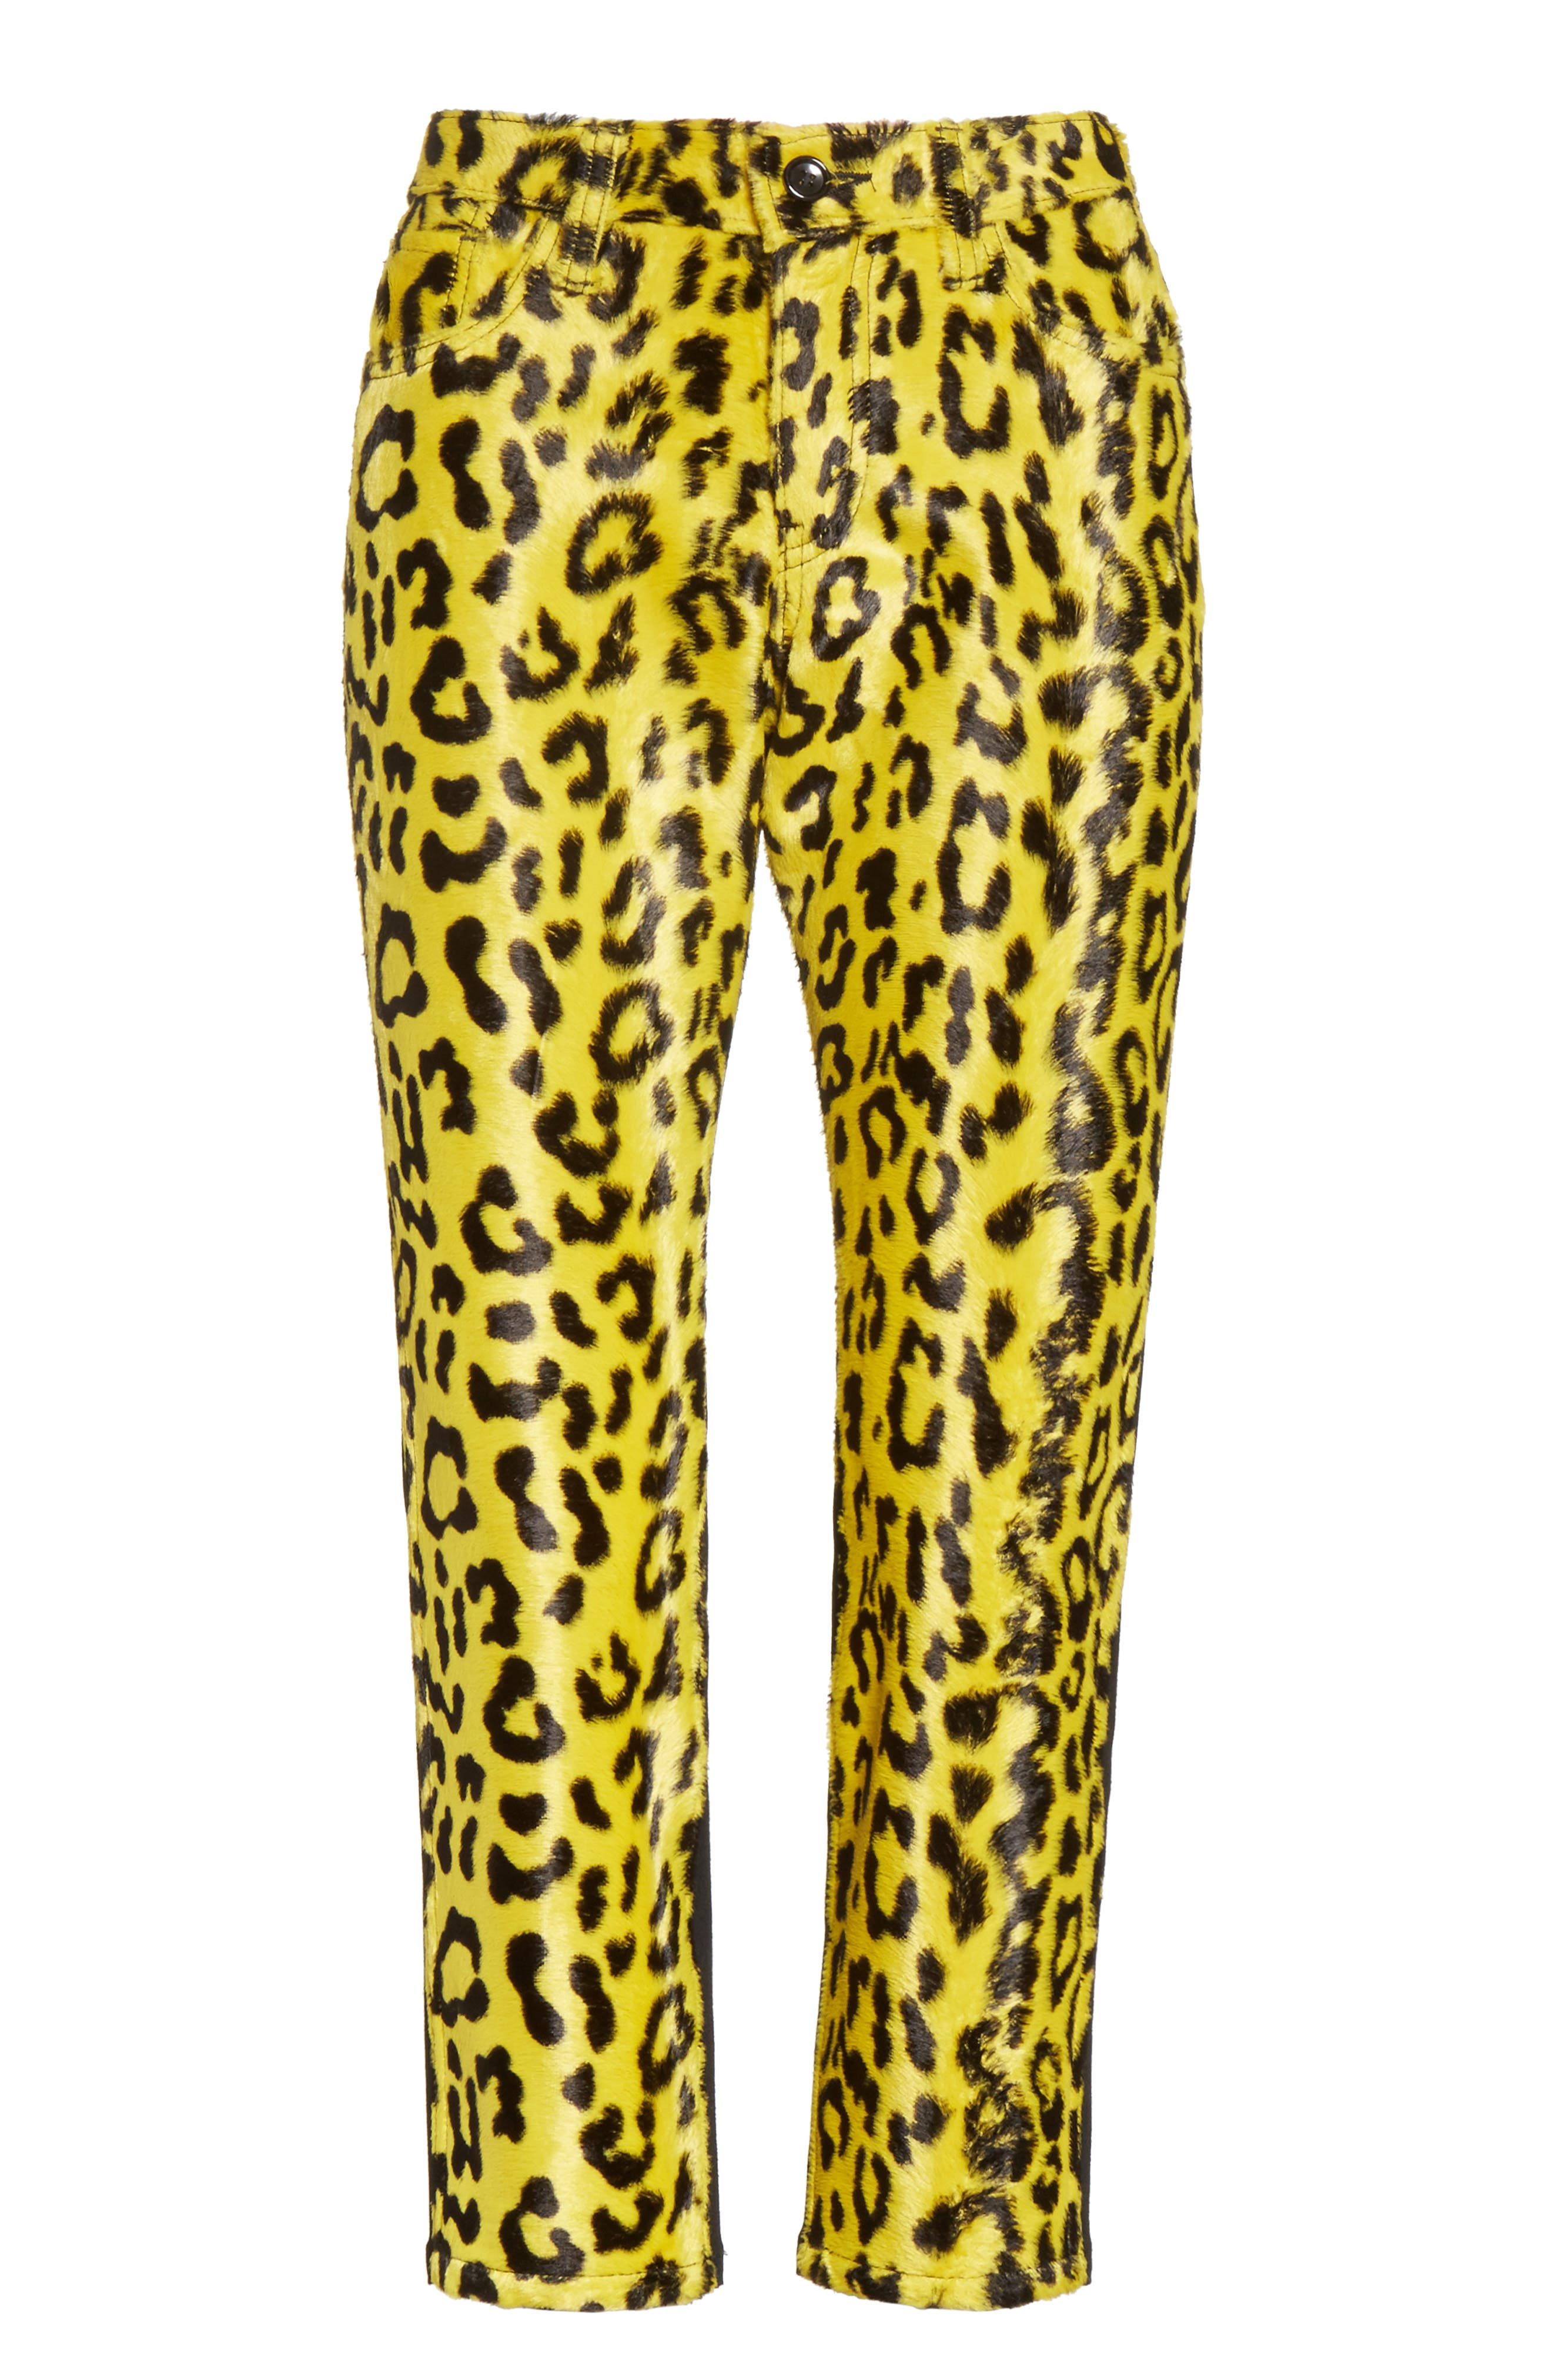 Cheetah Print Crop Skinny Pants,                             Alternate thumbnail 6, color,                             750